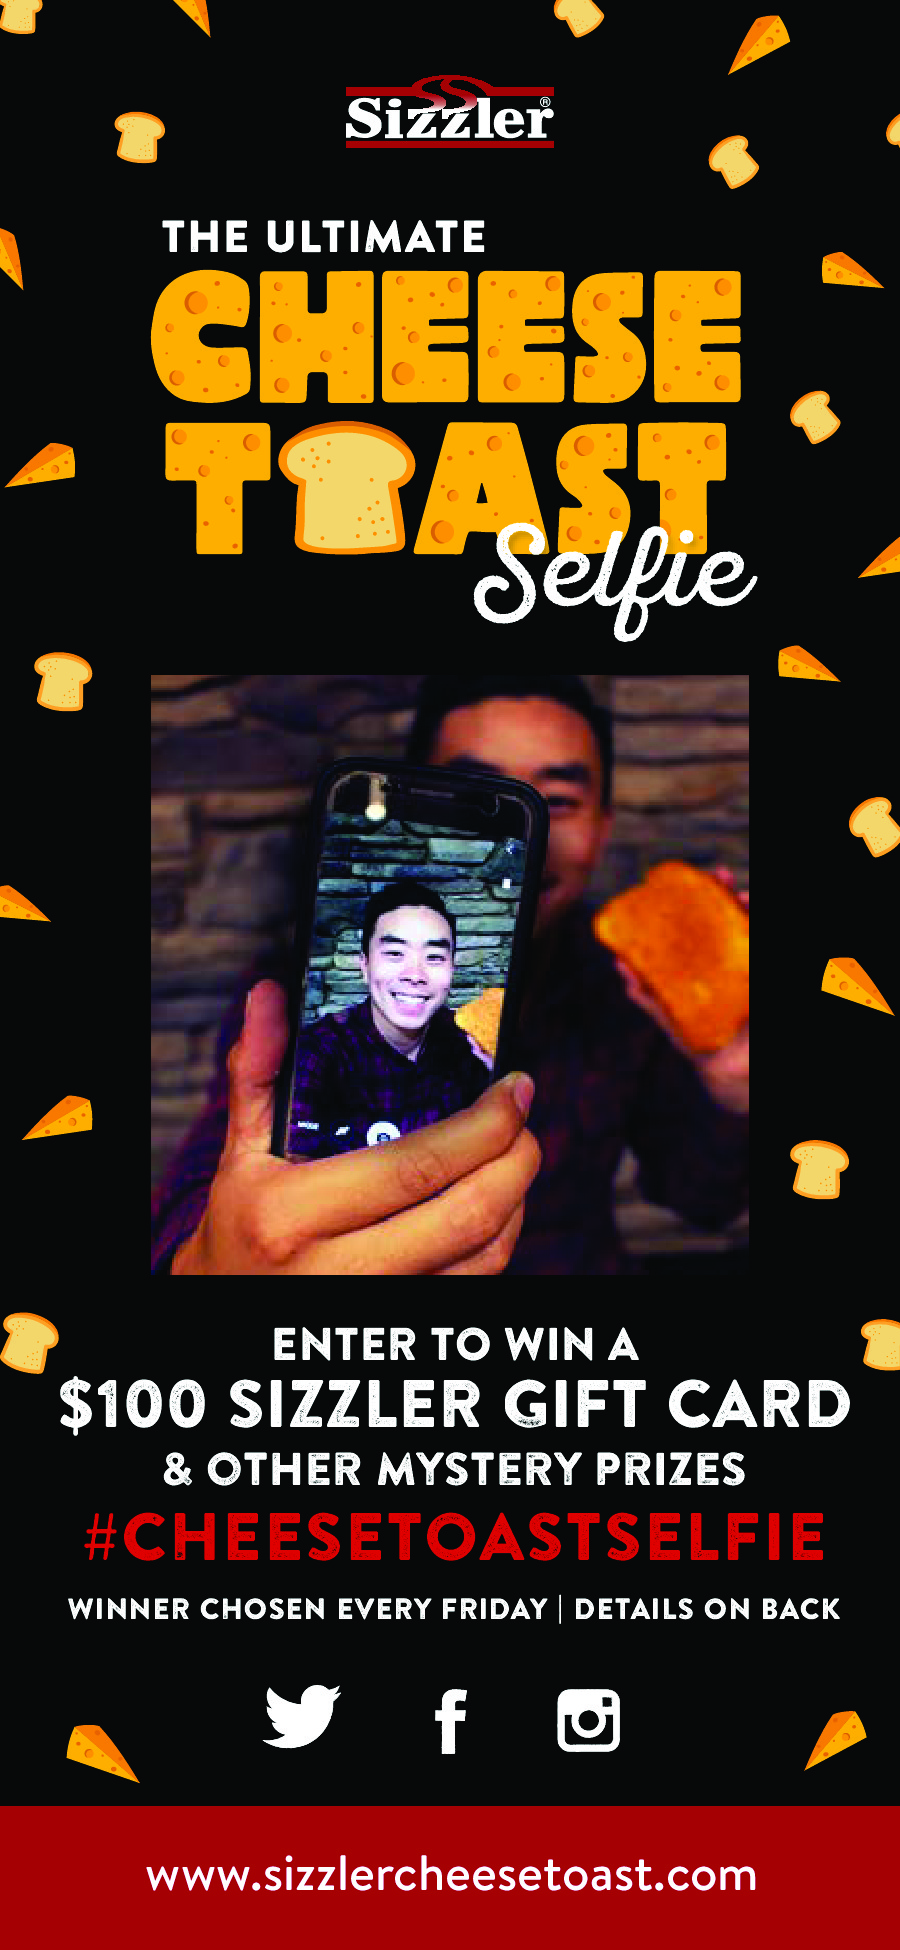 Sizzler Cheese Toast Selfie Contest easy to enter